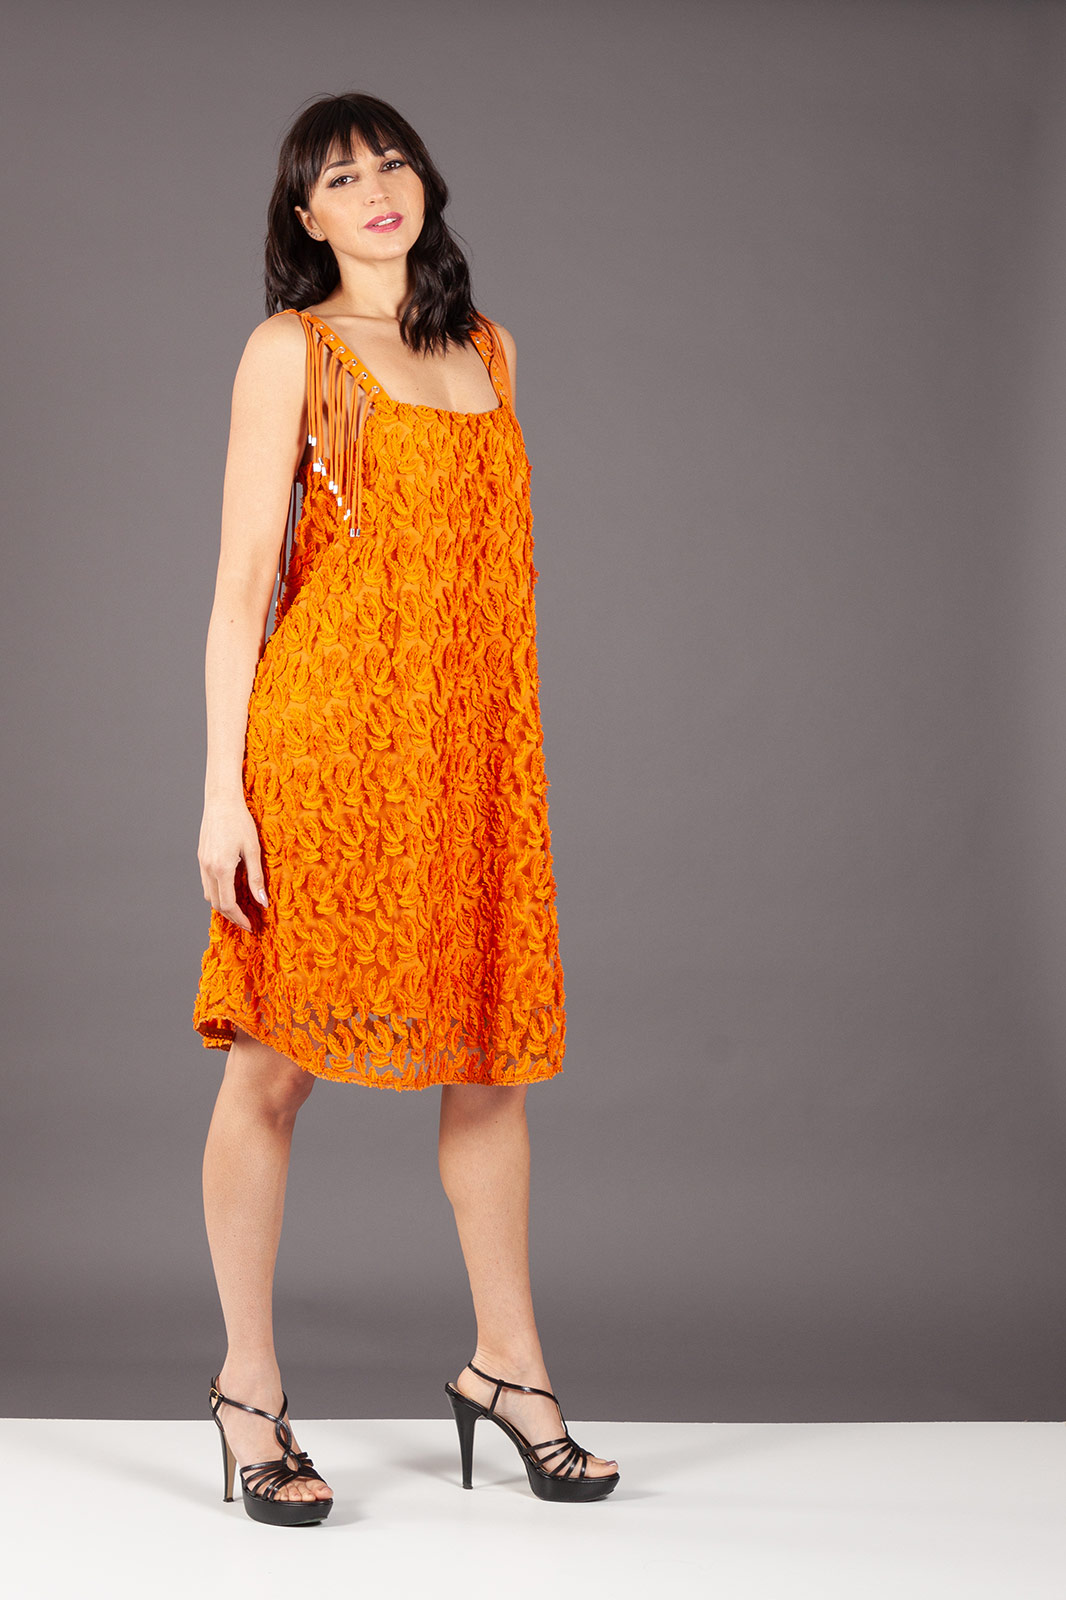 low cost df965 54f13 Abito in pizzo Just Cavalli - Loriet Boutiques